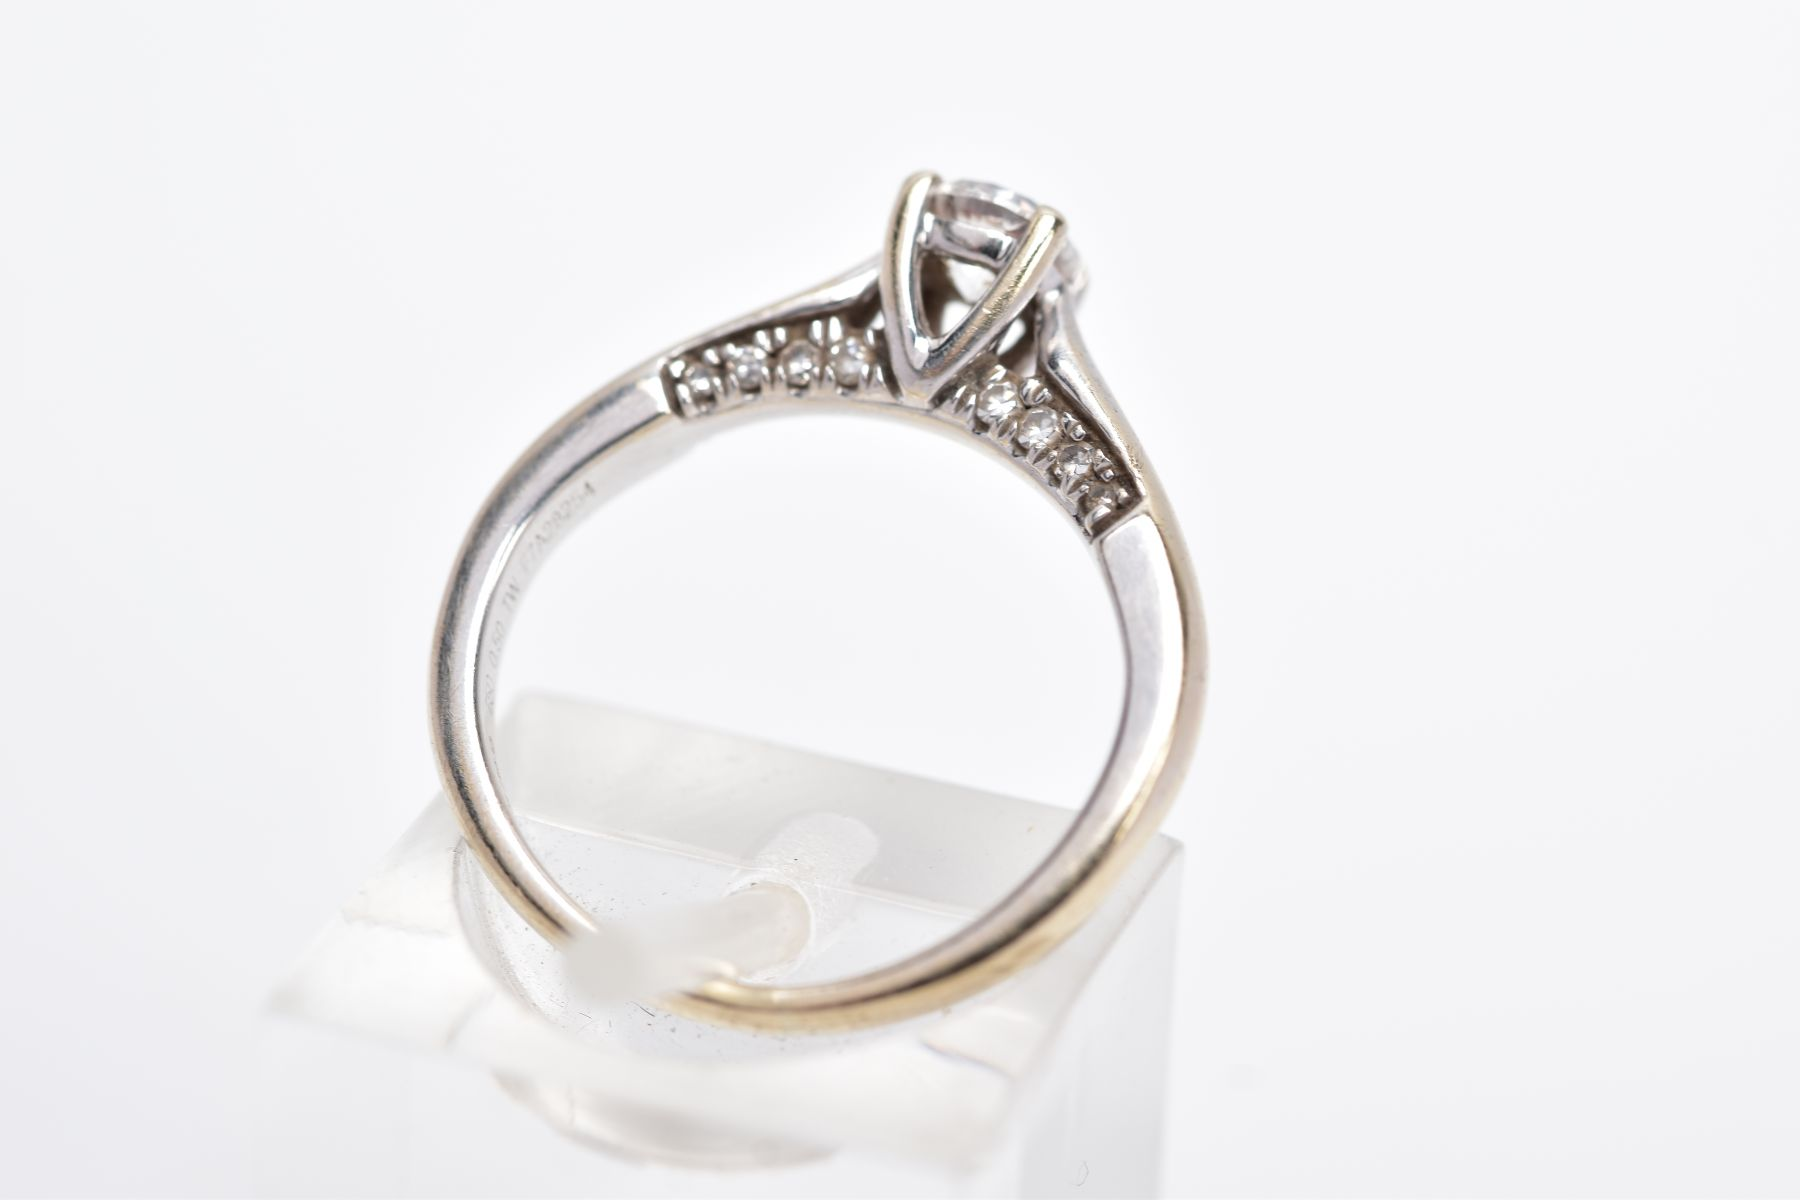 AN 18CT WHITE GOLD DIAMOND RING, designed with a central claw set, round brilliant cut diamond, - Image 3 of 4